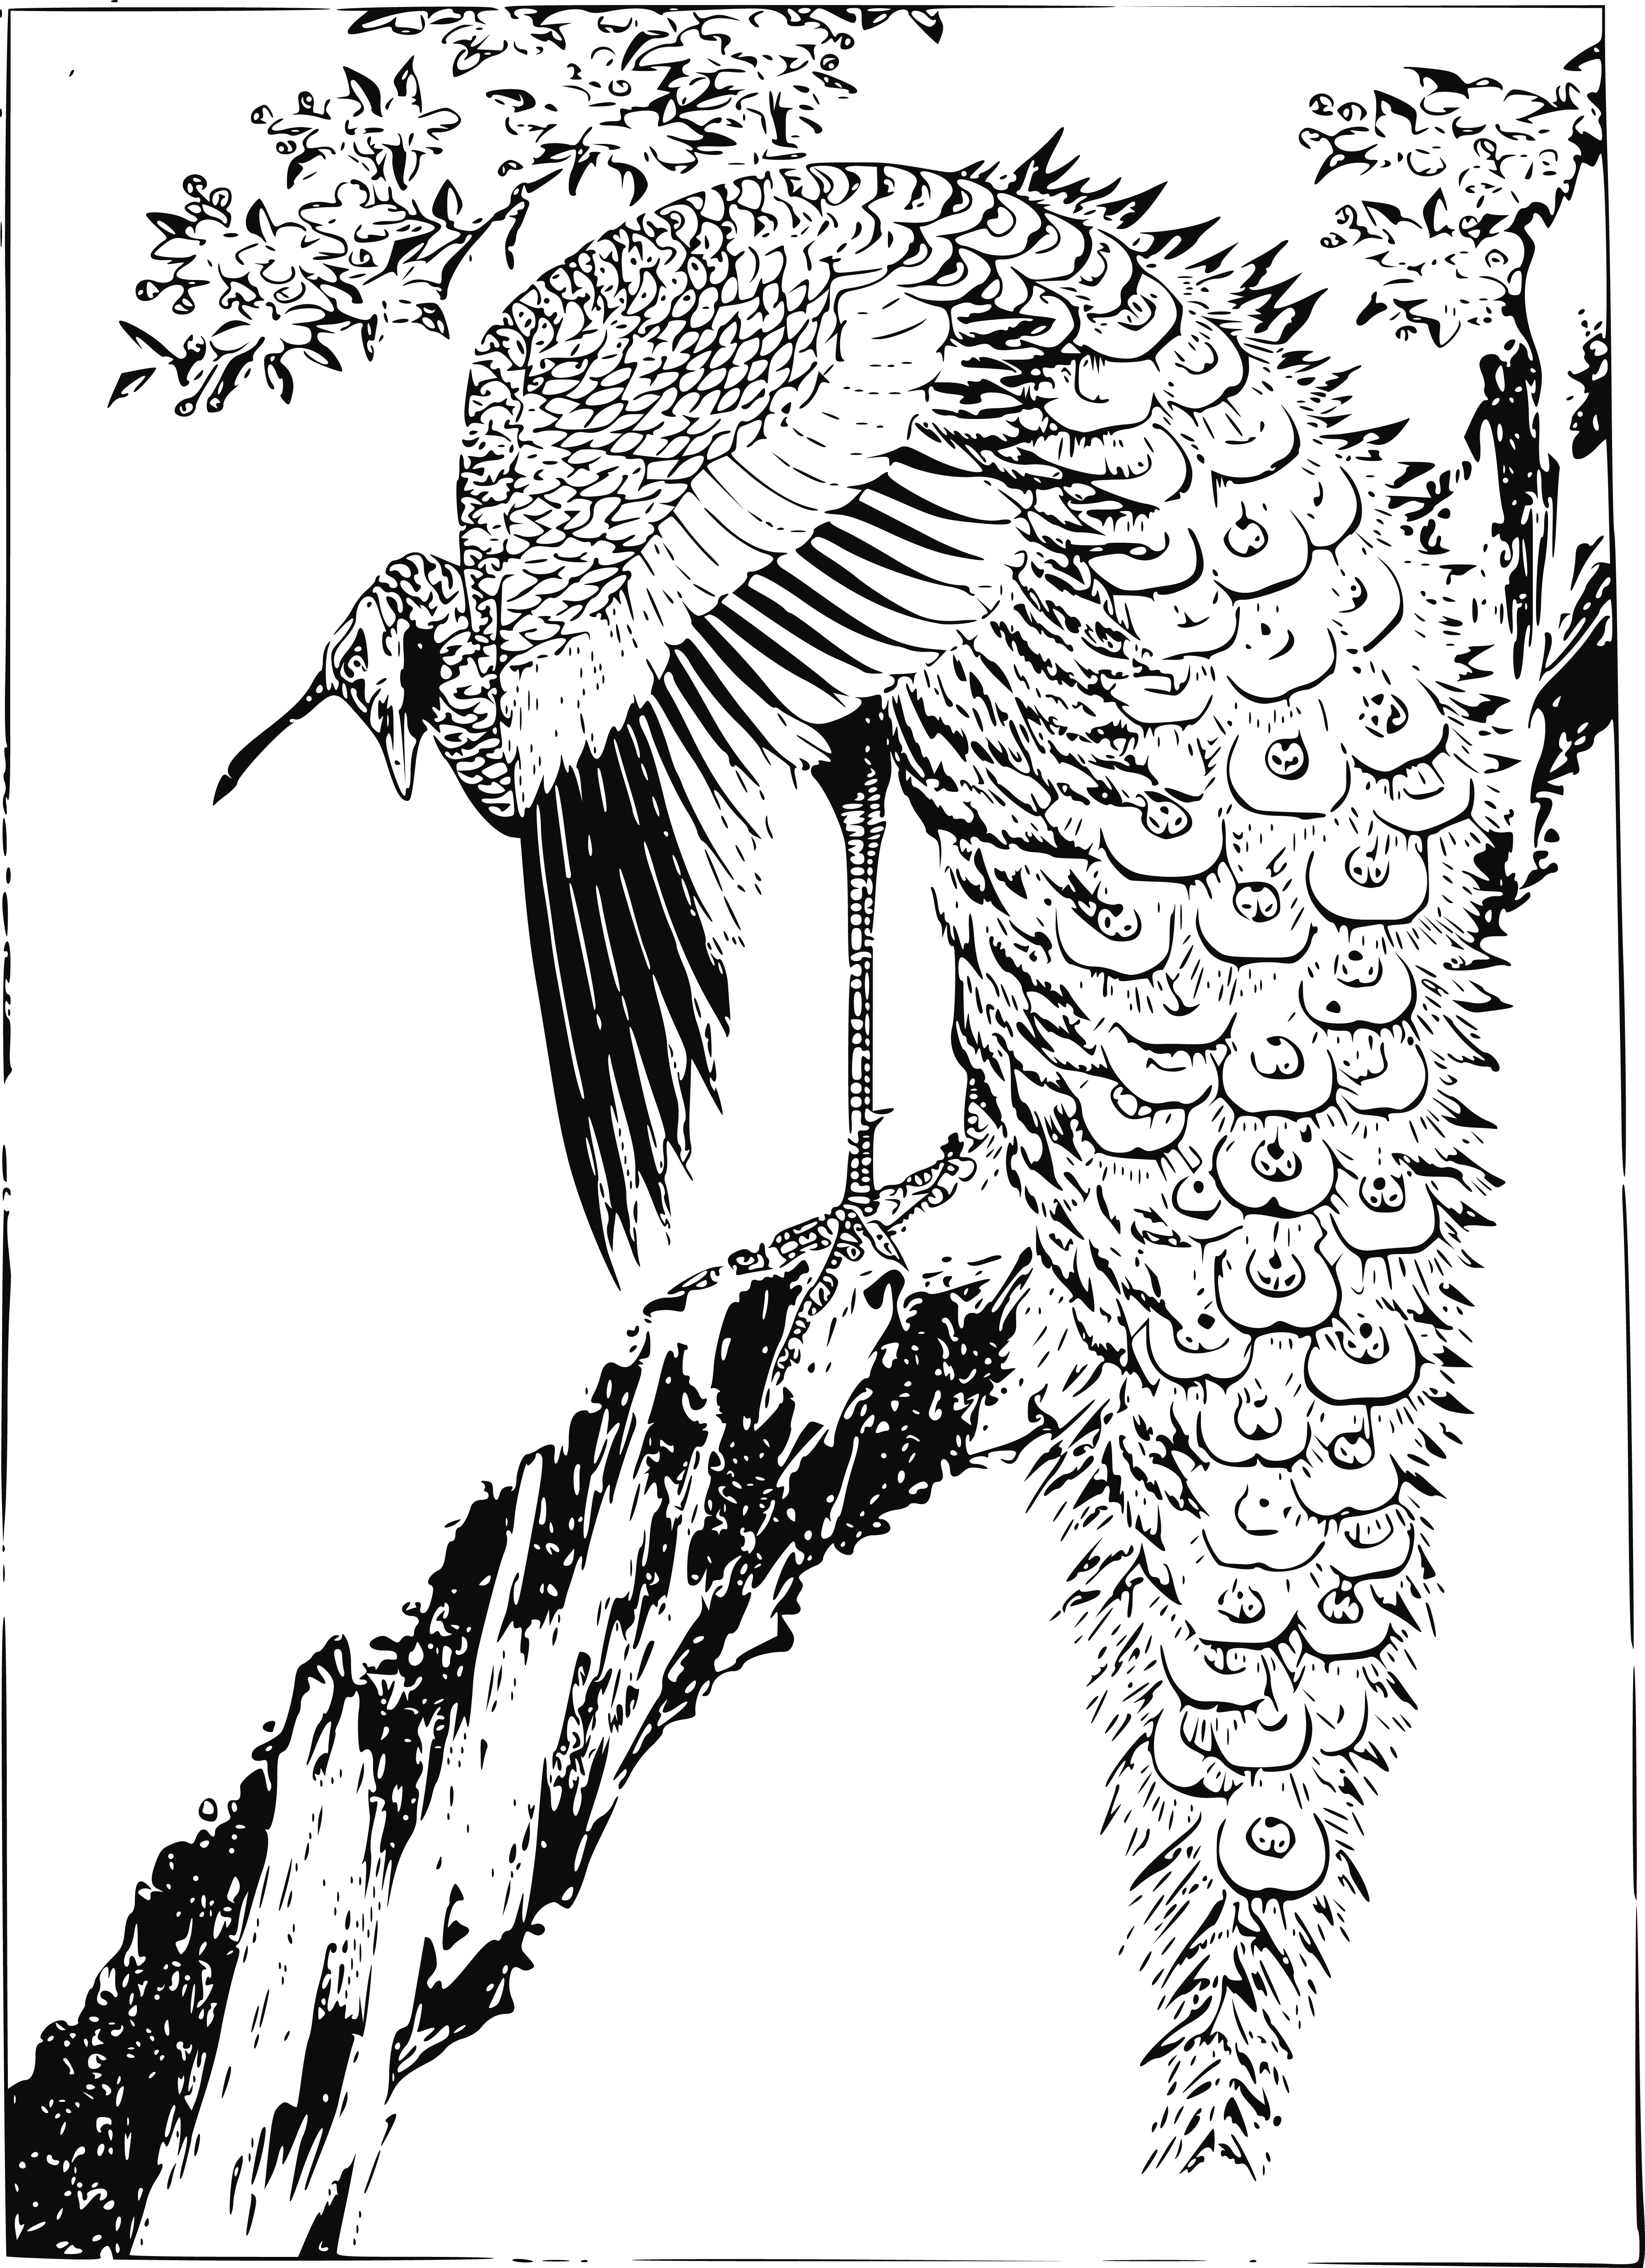 Free Clipart Of A peacock.